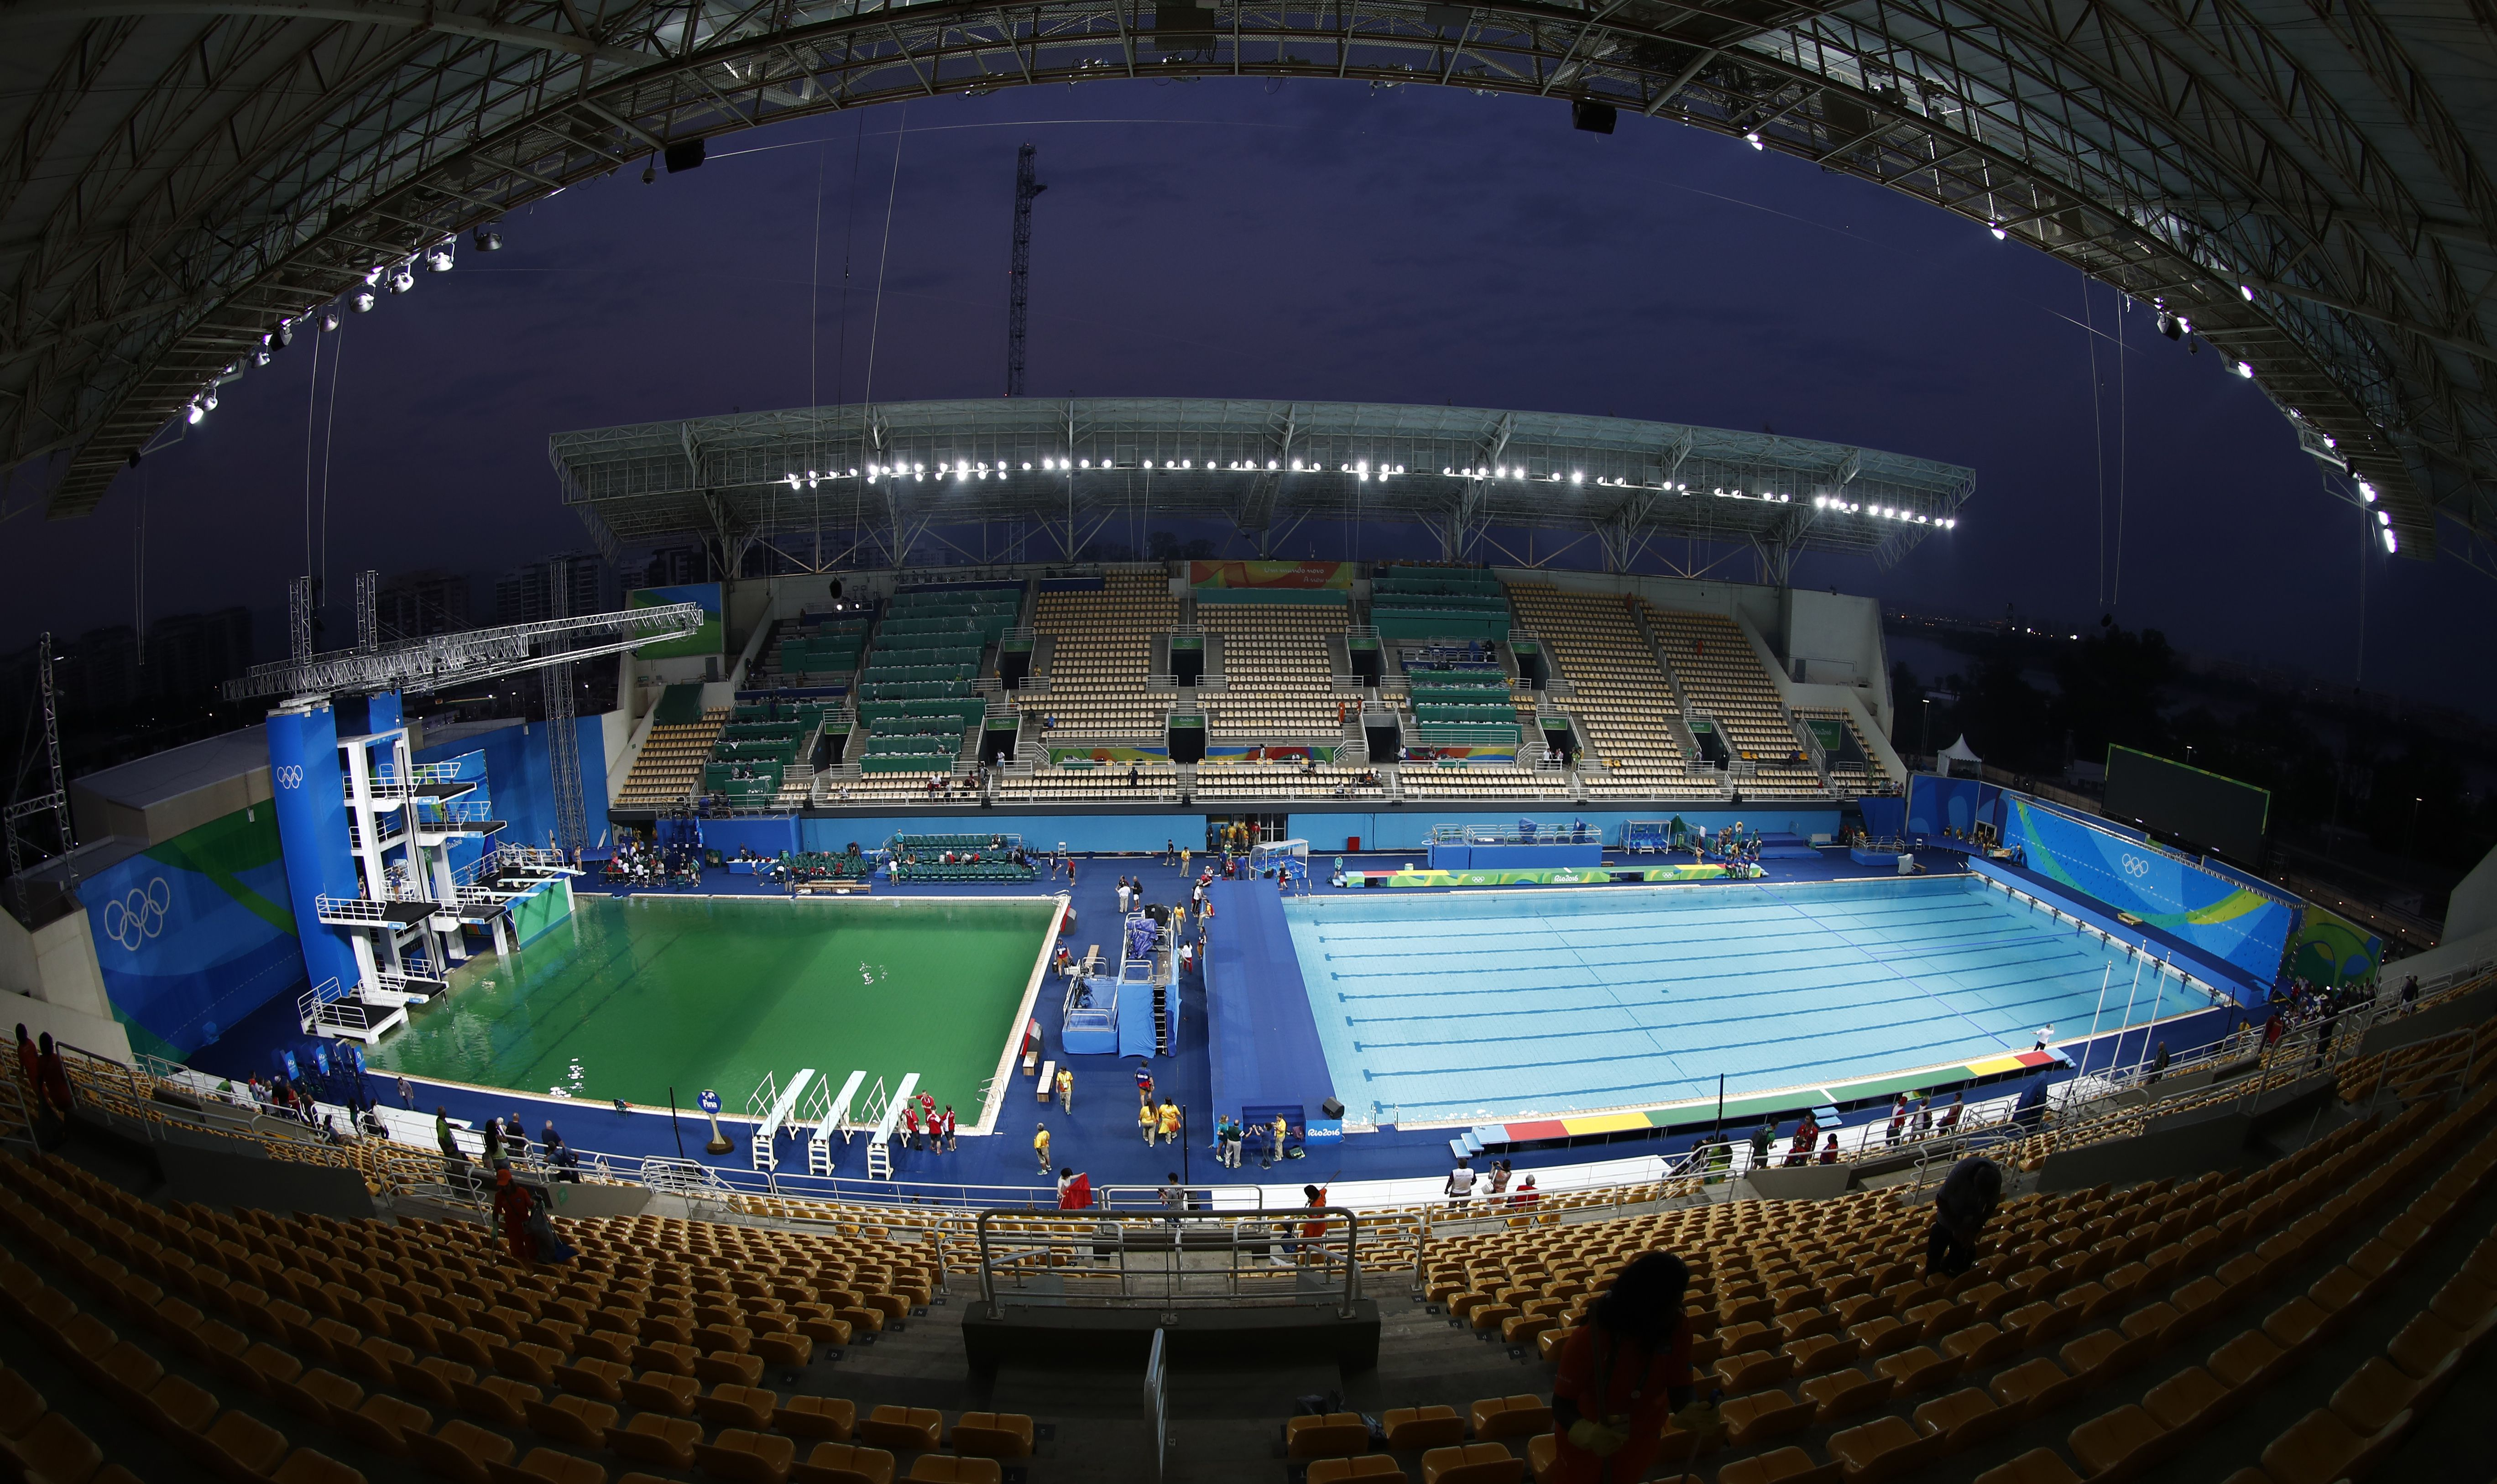 The Real Reason The Olympic Pool Is Green Is Actually Really Dangerous